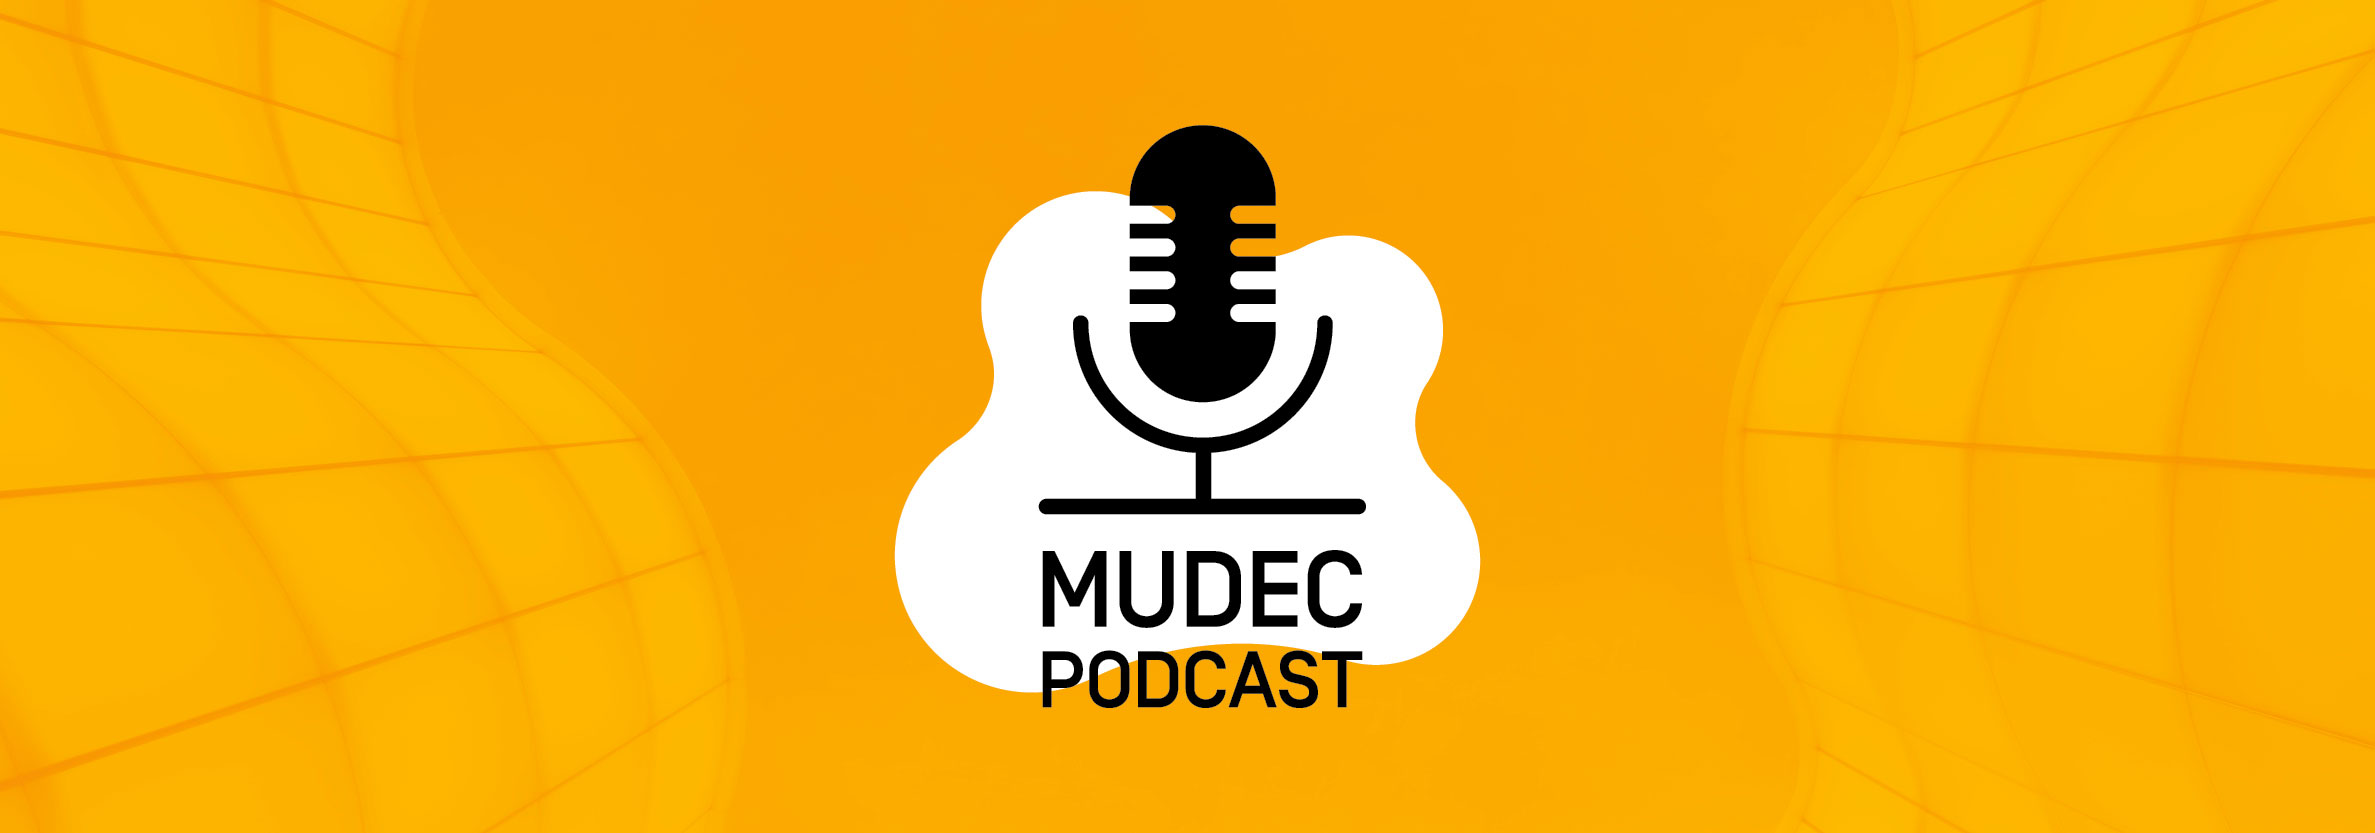 Mudec Podcast